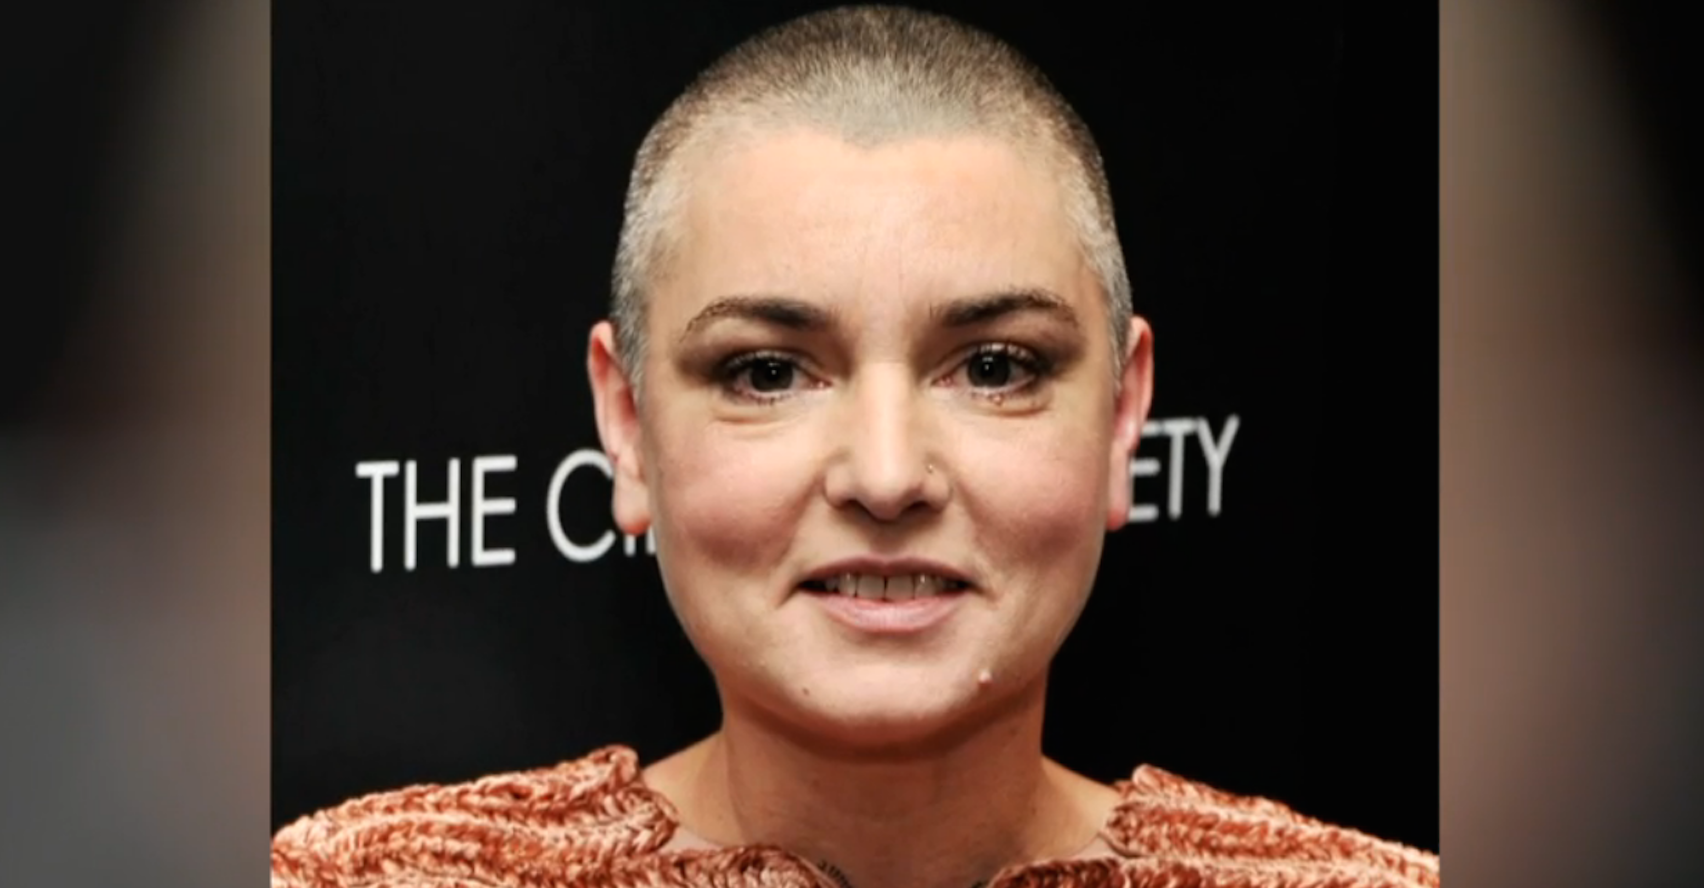 UPDATE: Sinead O'Connor found after being reported missing